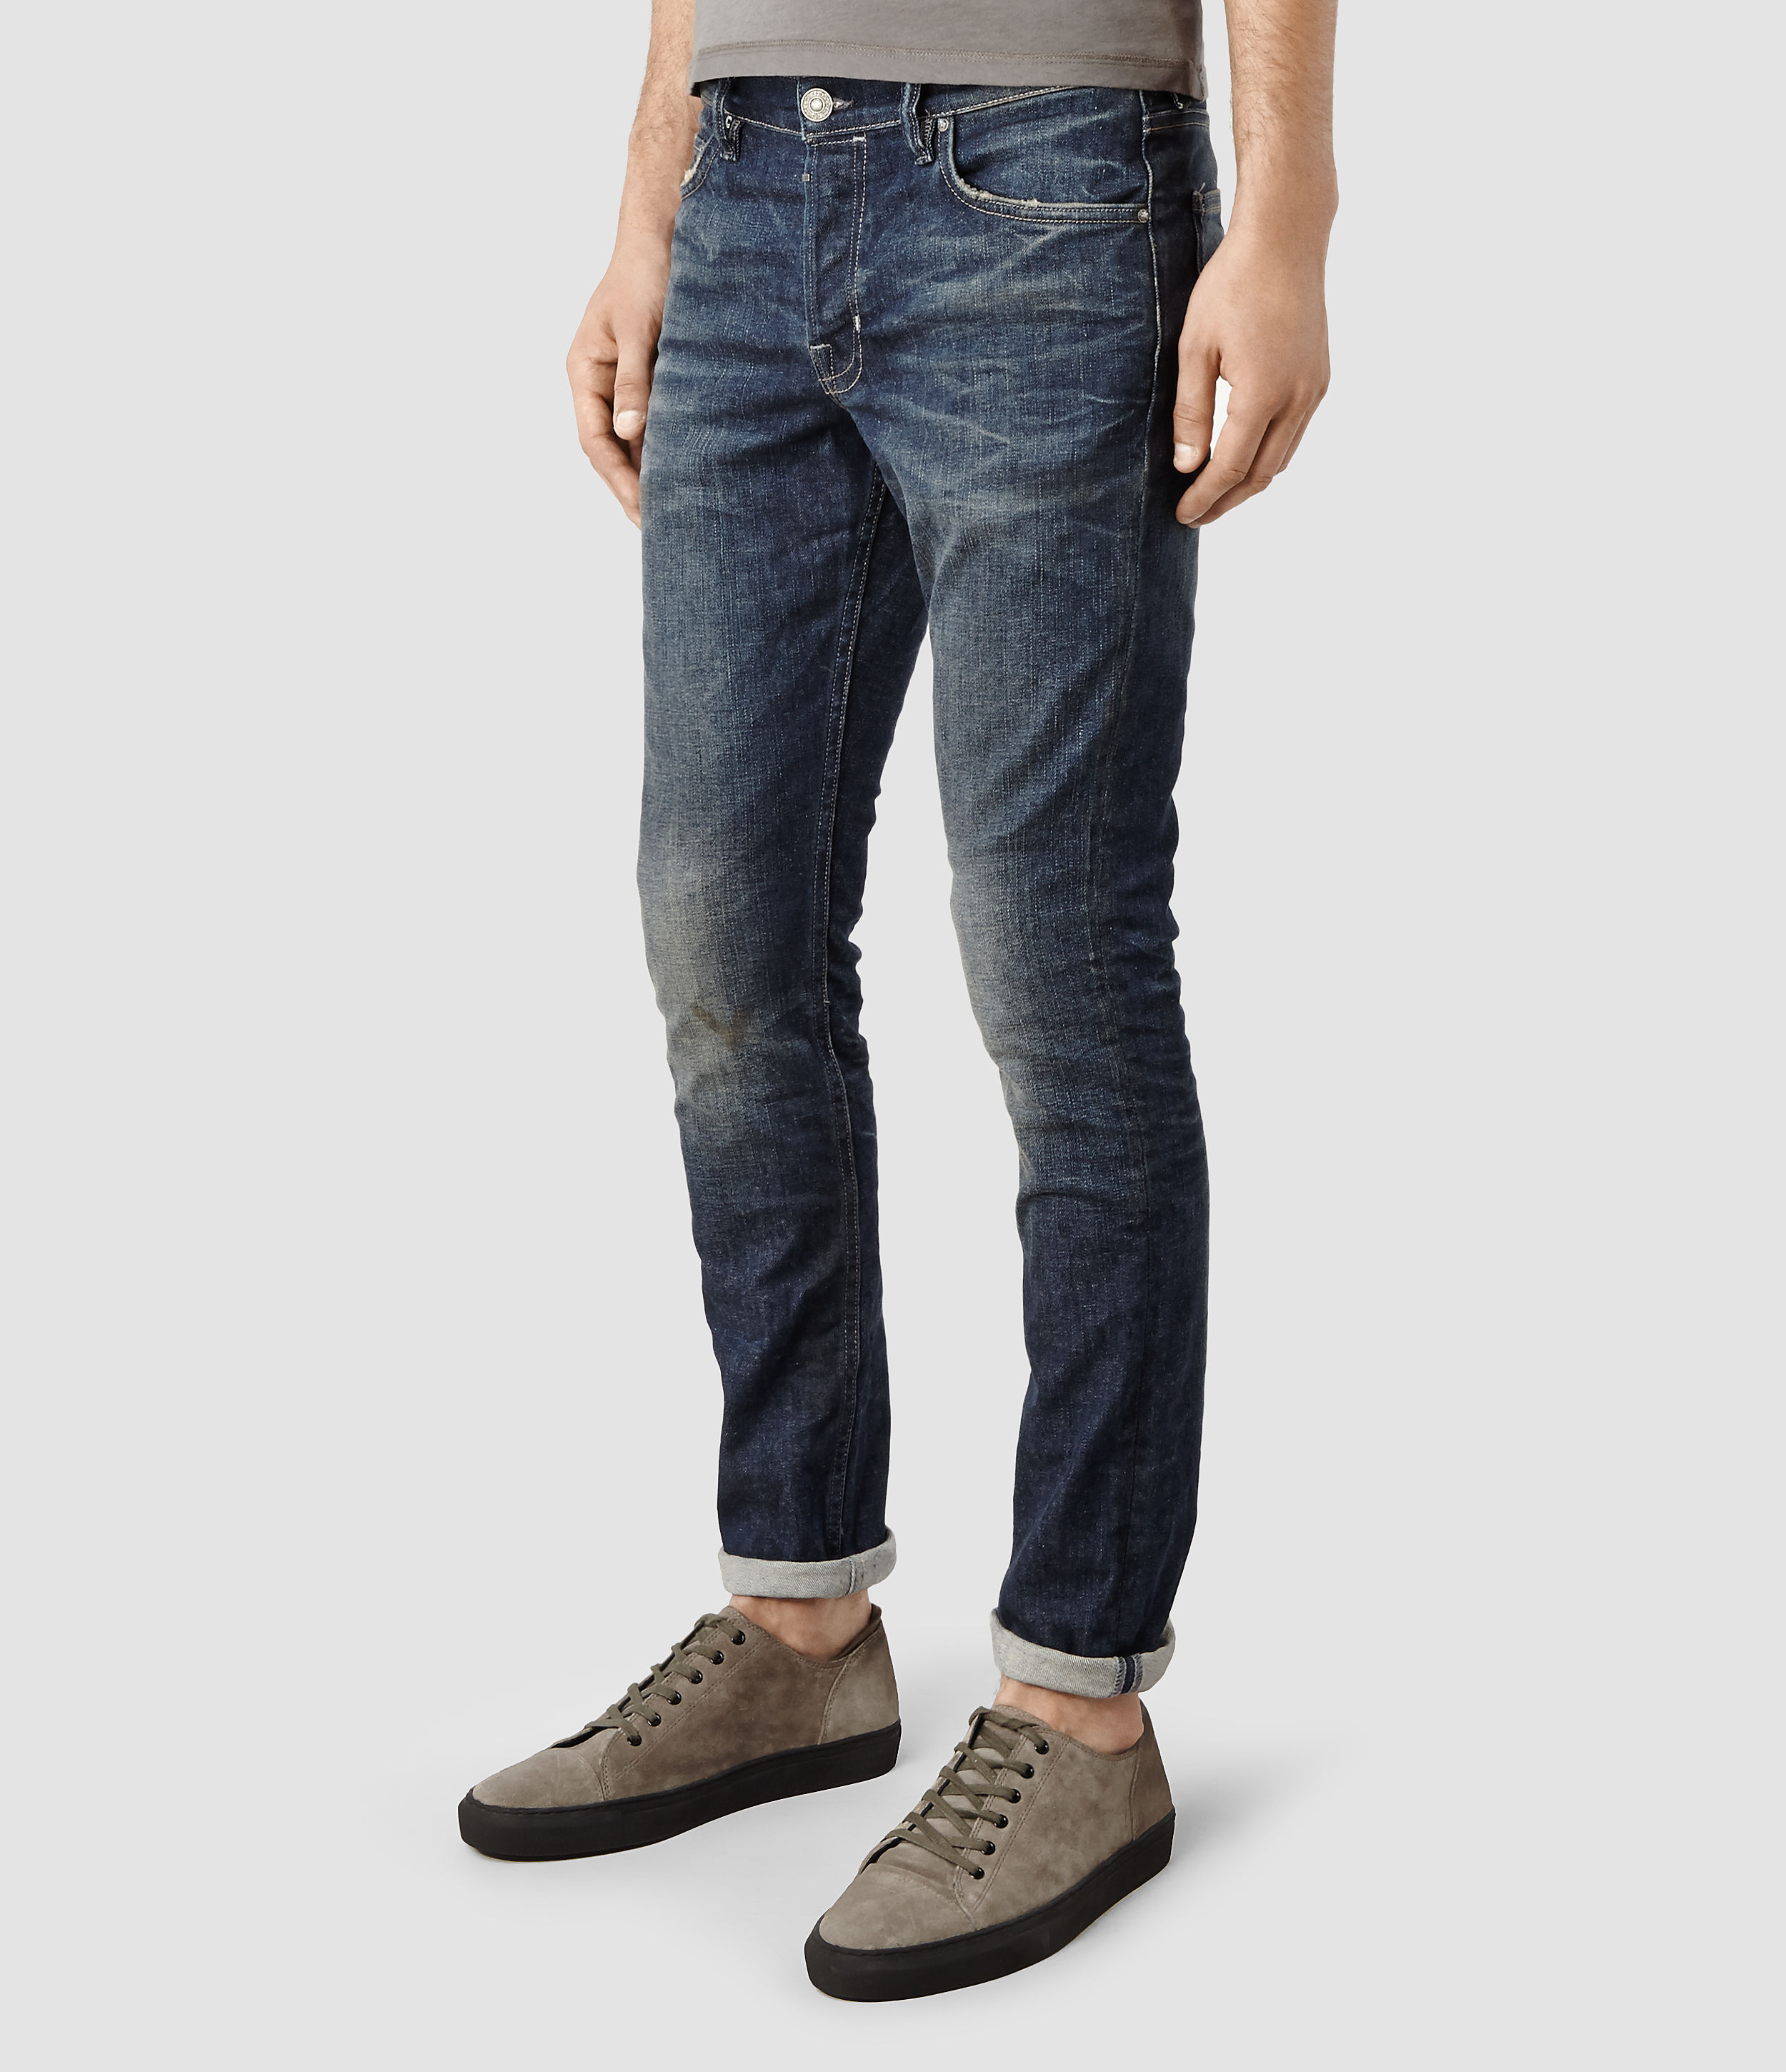 Allsaints Stamp Cigarette Jeans In Blue For Men Lyst